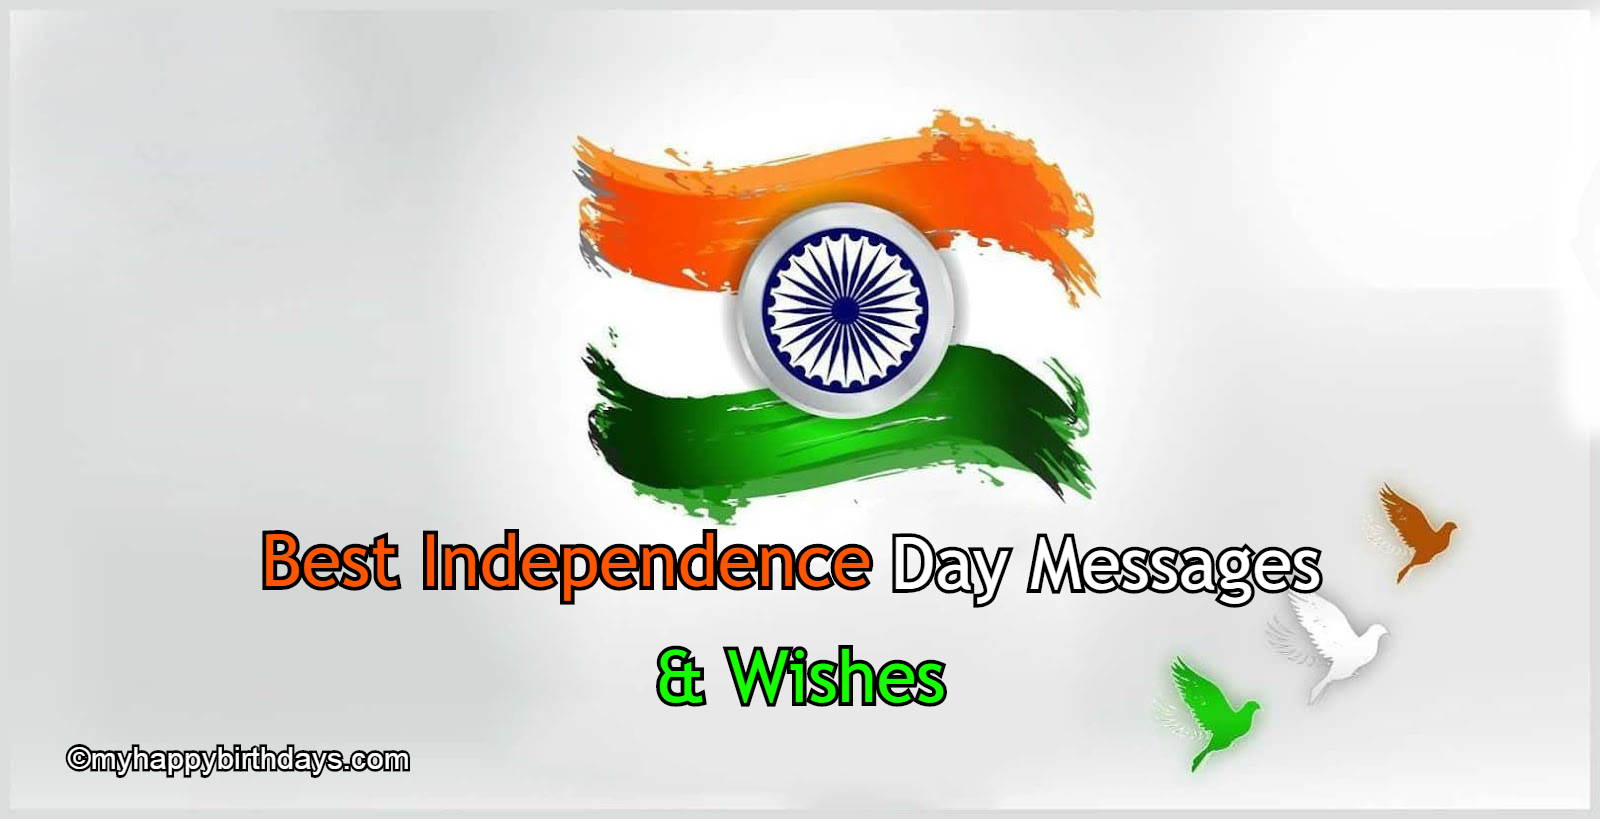 Happy Independence Day Wishes, Messages, Images, Status Quotes